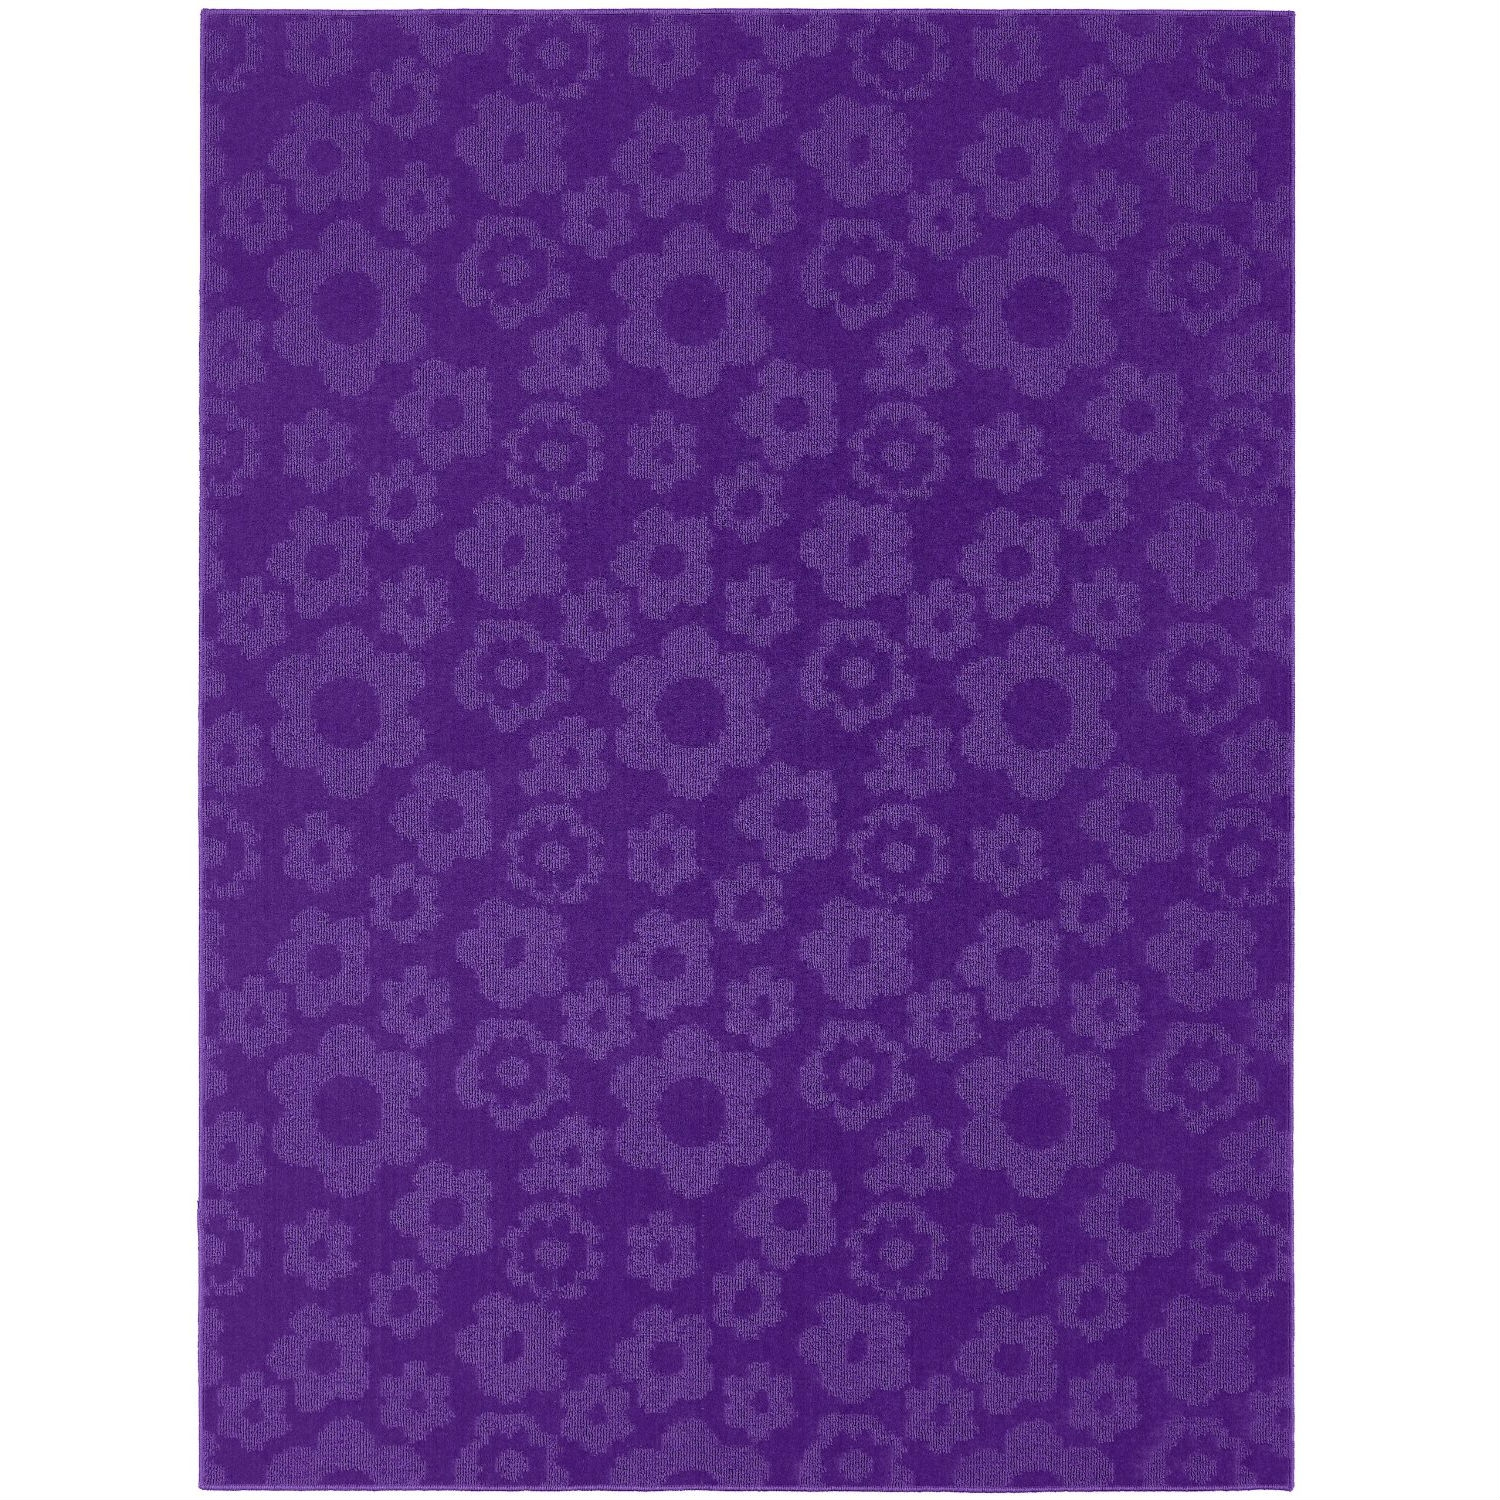 5' x 7' Purple Area Rug with Floral Flowers Pattern - Made in USA, G5X7P3897 :  Designer rugs do not have to break the bank. This 5' x 7' Purple Area Rug with Floral Flowers Pattern - Made in USA is a machine tufted cut and loop rug in a cute retro flower pattern in fun colors that will beautify any children's room or dorm room. This rug also has the added benefit of being treated with an Odor Eliminator. Rug Magic is not a deodorant that masks odor, but a technology that chemically absorbs and decomposes gases from the odor source over a period of time. Rug Magic can be effective in helping to control odor buildup from substances in the home and office. Rug Magic is odorless and completely non-toxic and safe for pets and children. This rug is proudly Made In The USA.